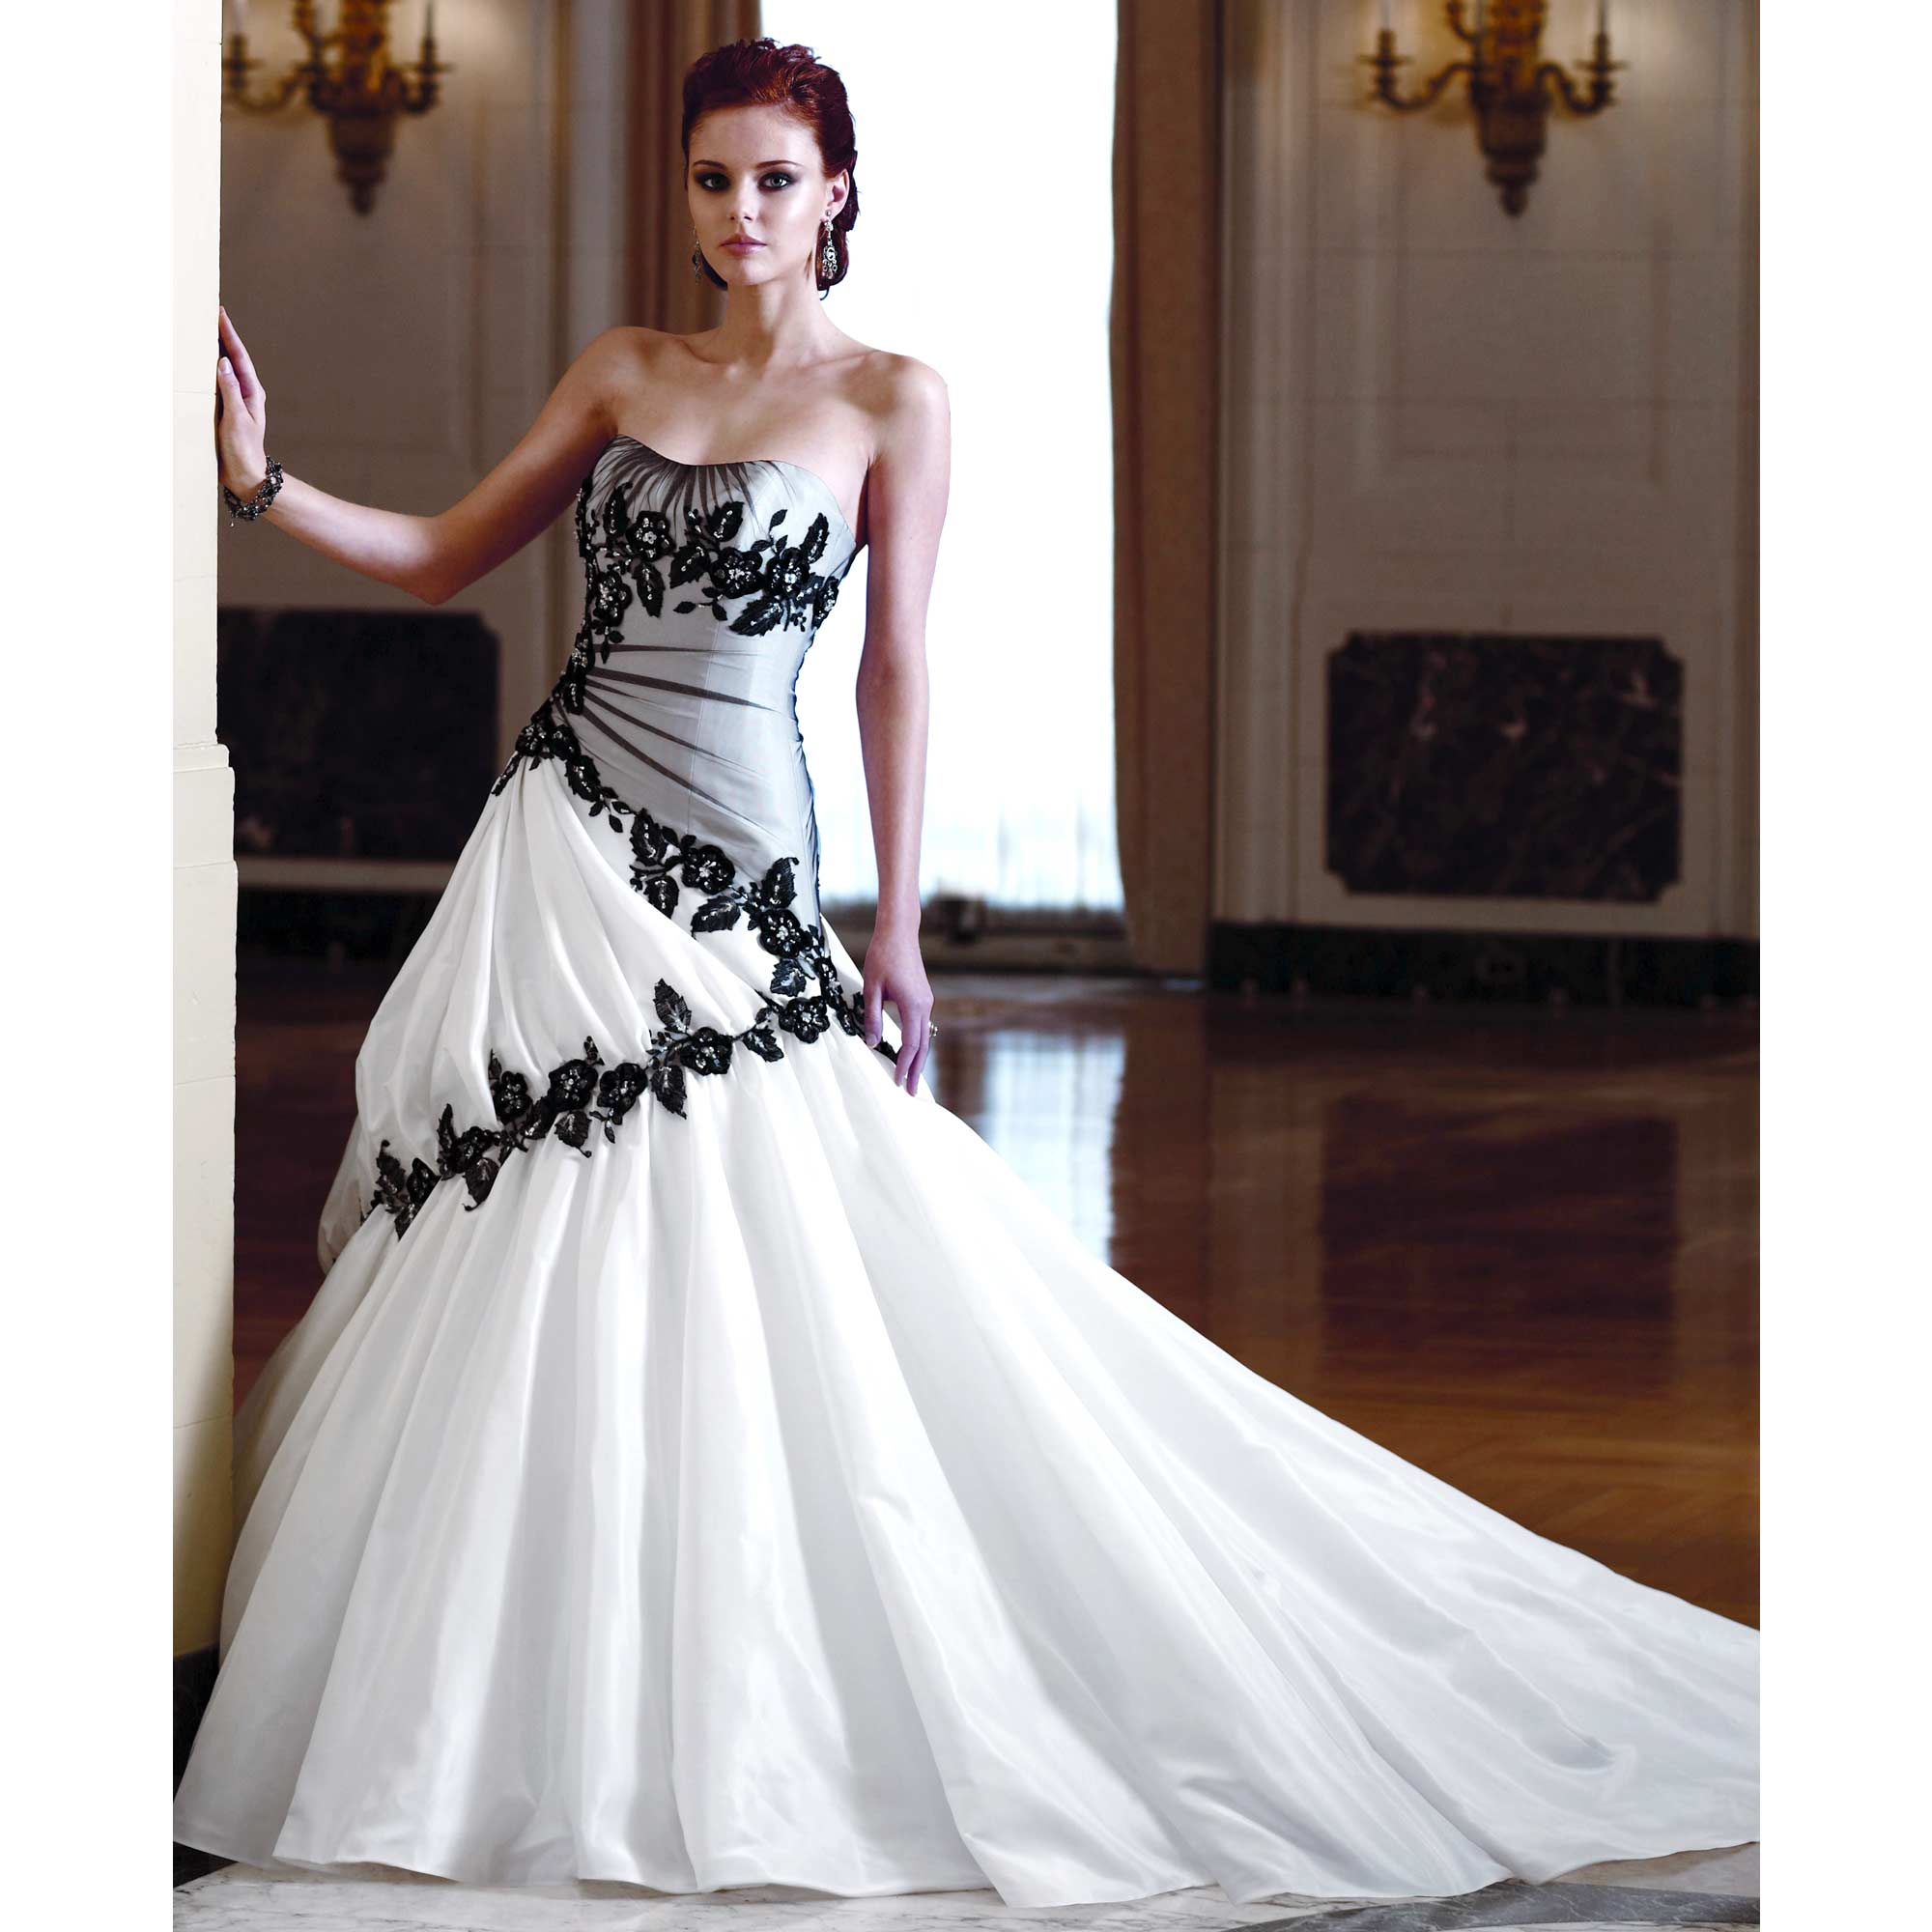 Ball gown black white wedding dress wedding plan ideas for Wedding dresses white and black